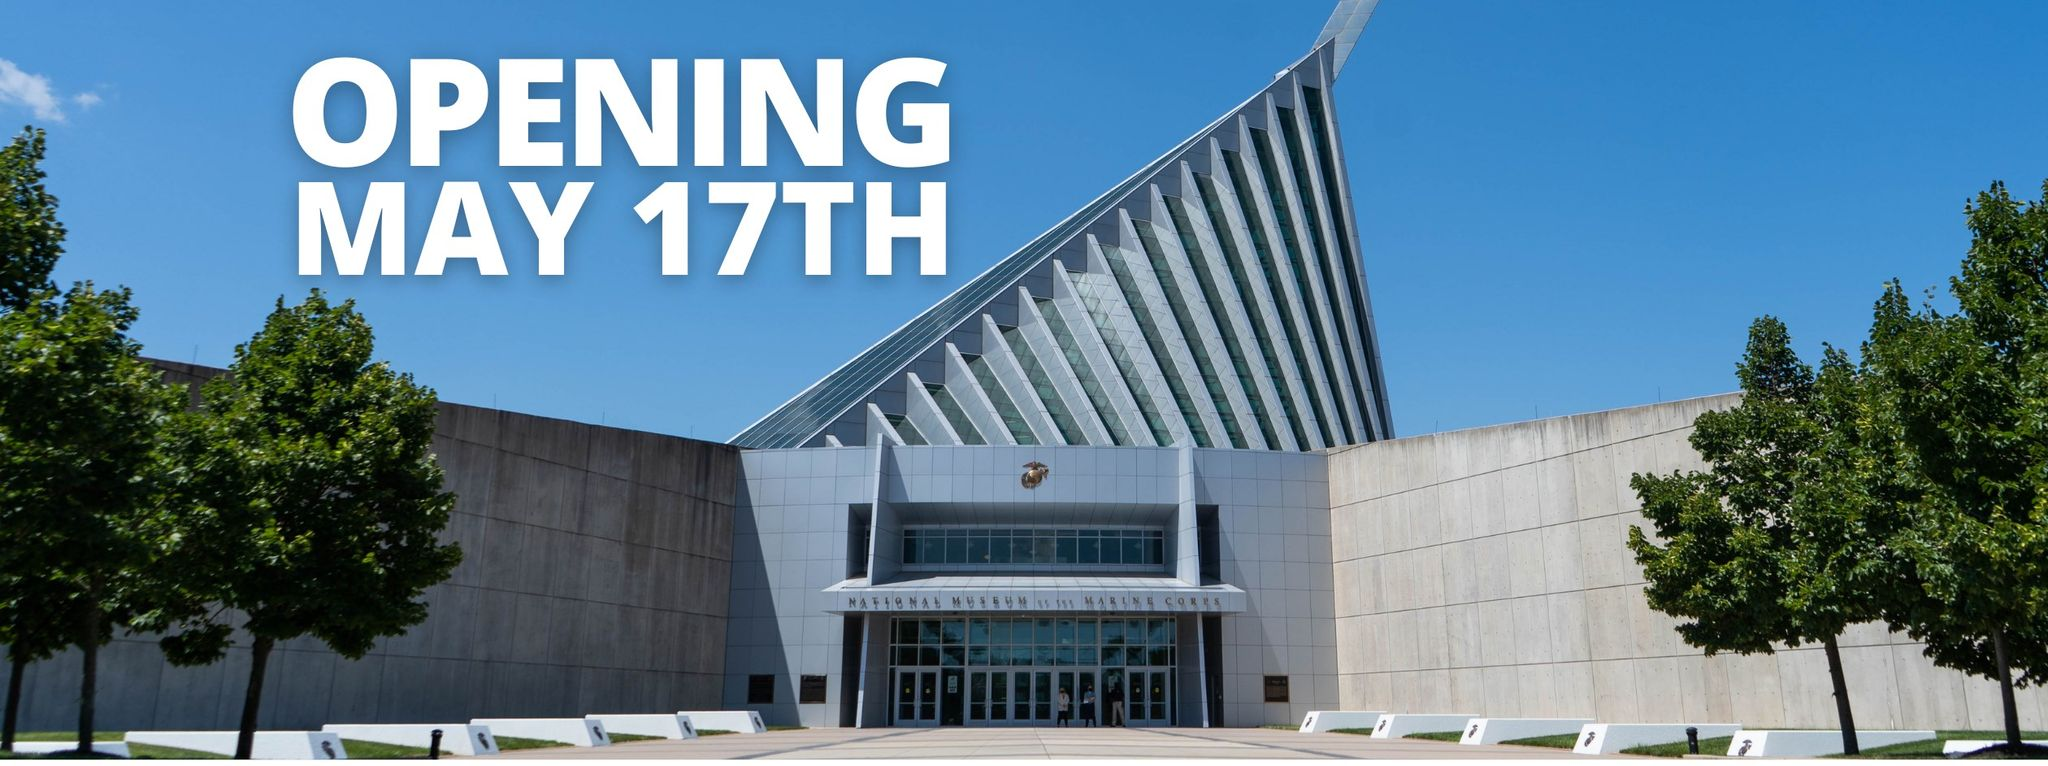 National Museum of the Marine Corps to reopen May 17th